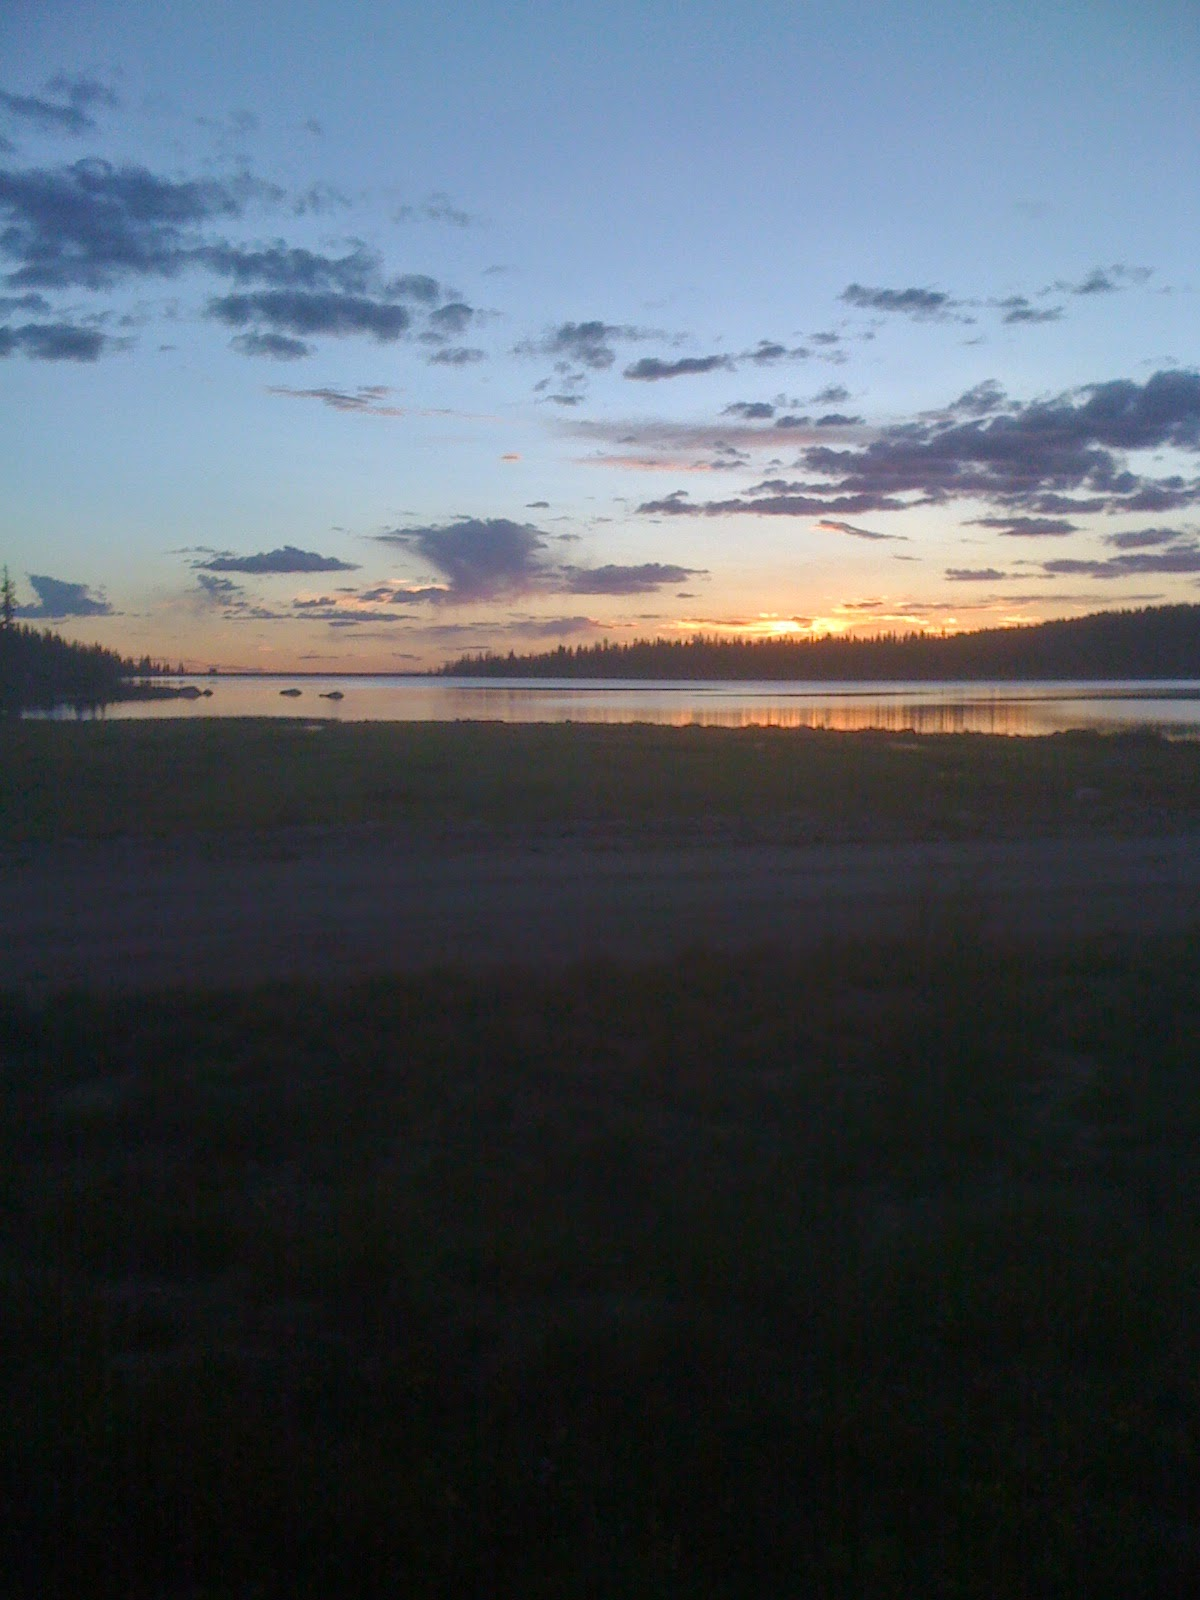 Sunset at Fish Creek Reservoir